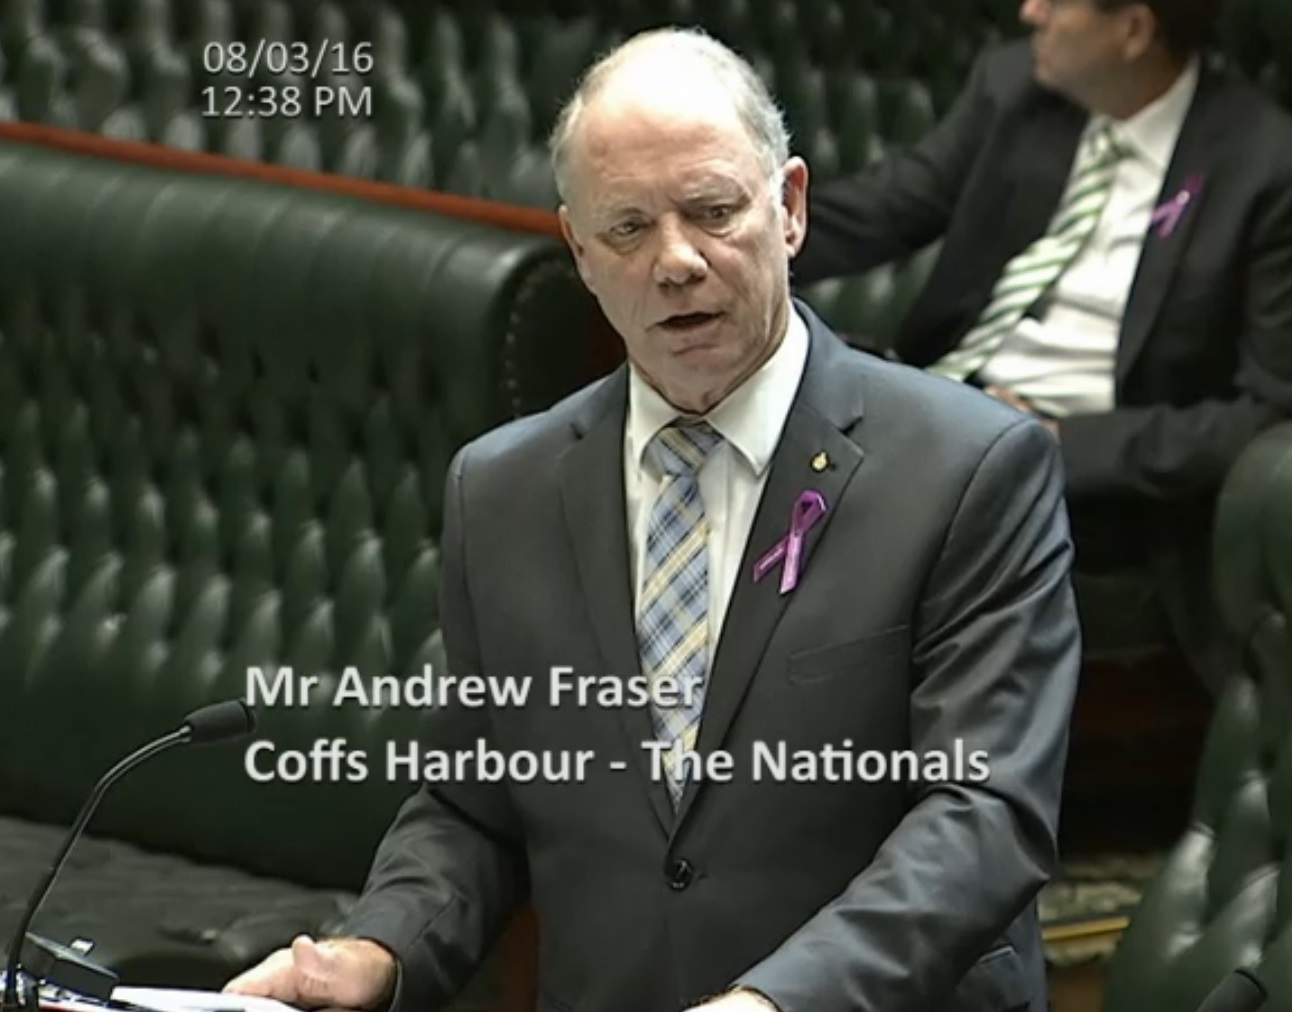 Coffs Harbour MP Andrew Fraser calls for an investigation into Wundarra Services during Tuesday's Legislative Assembly House sitting in NSW Parliament.